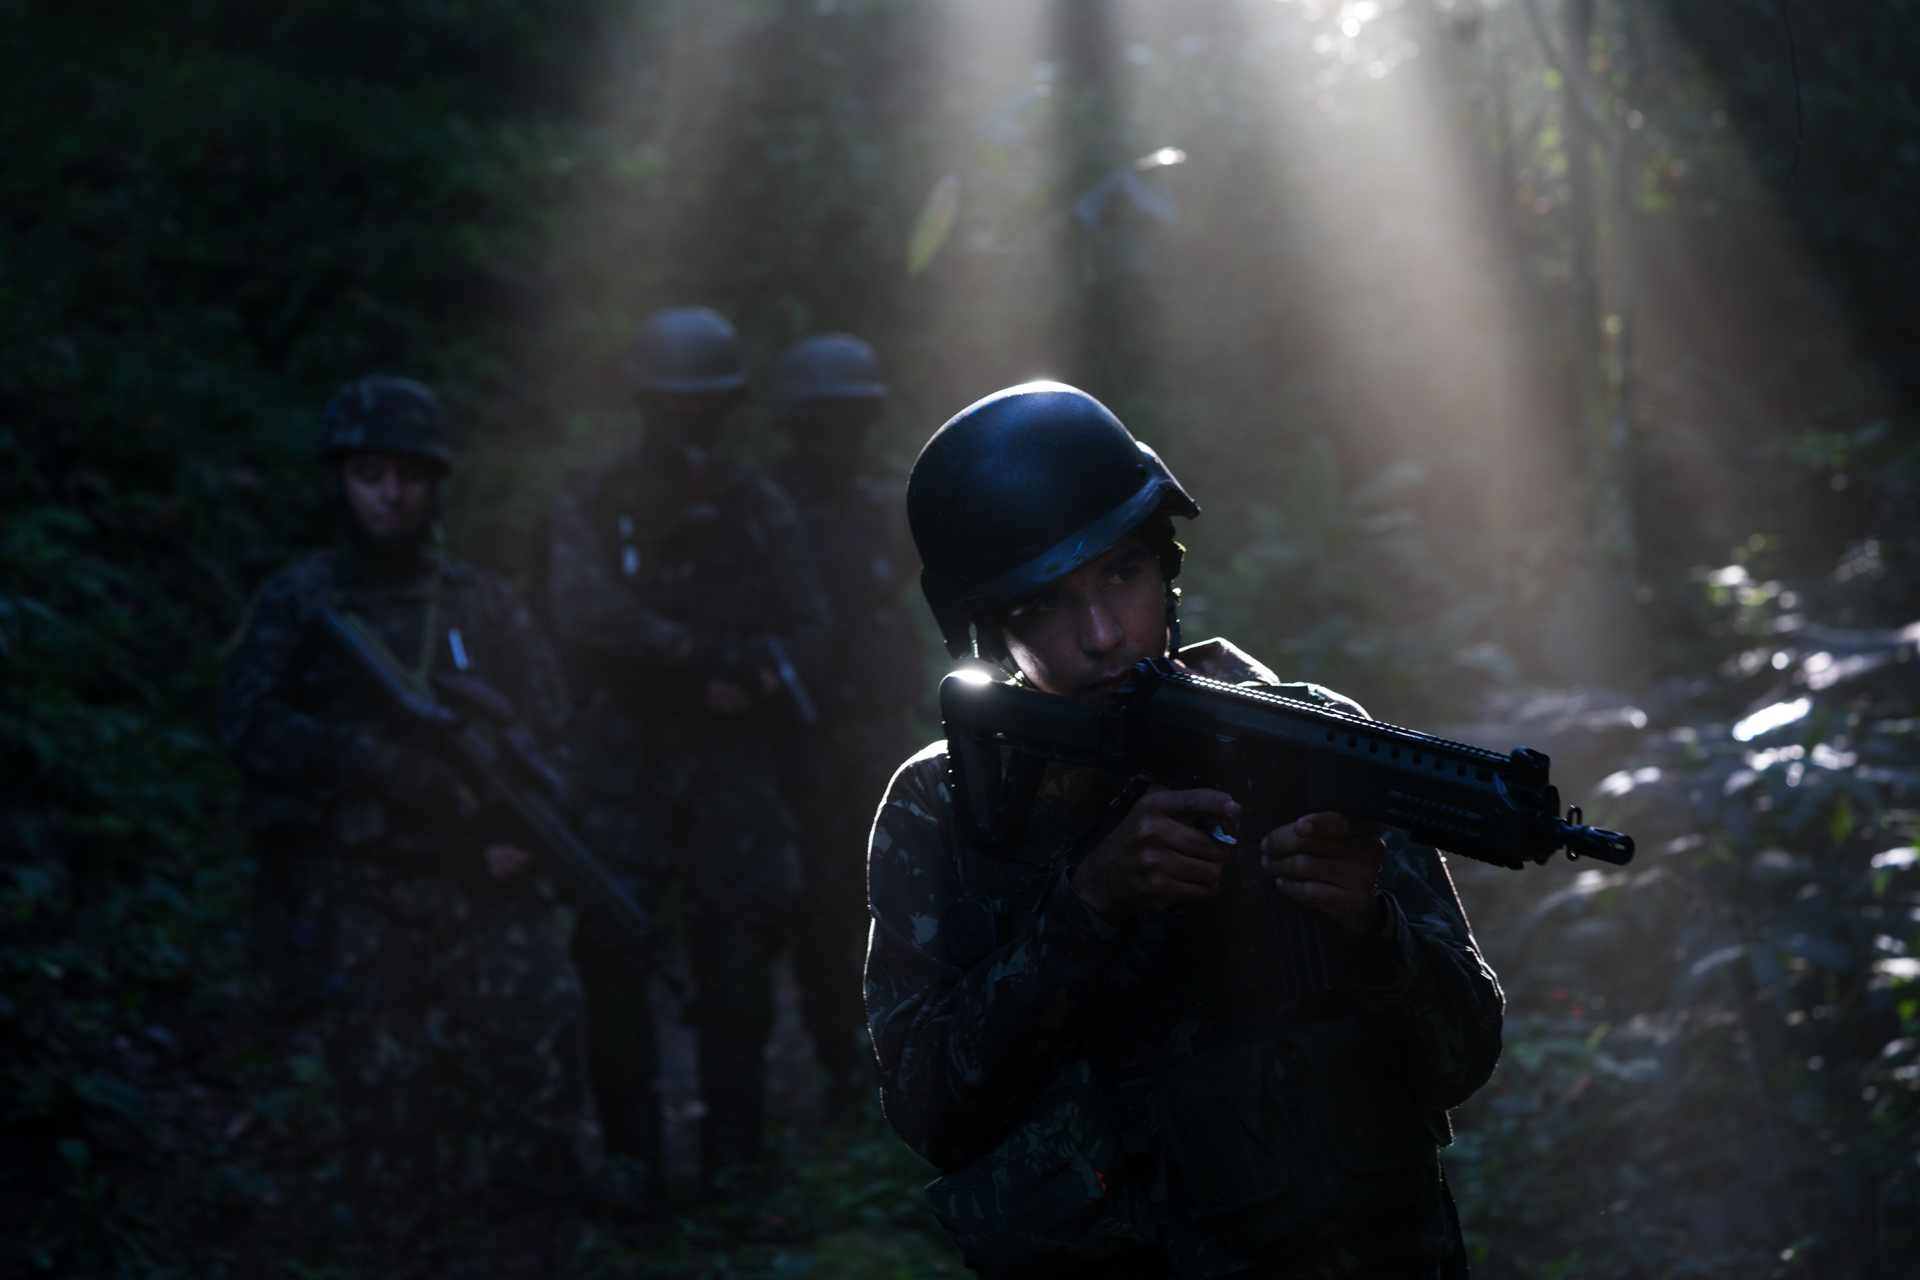 Soldiers patrol during an operation in Babilônia and Chapéu Mangueira Thursday, June 21st, 2018 in Rio de Janeiro, Brasil.